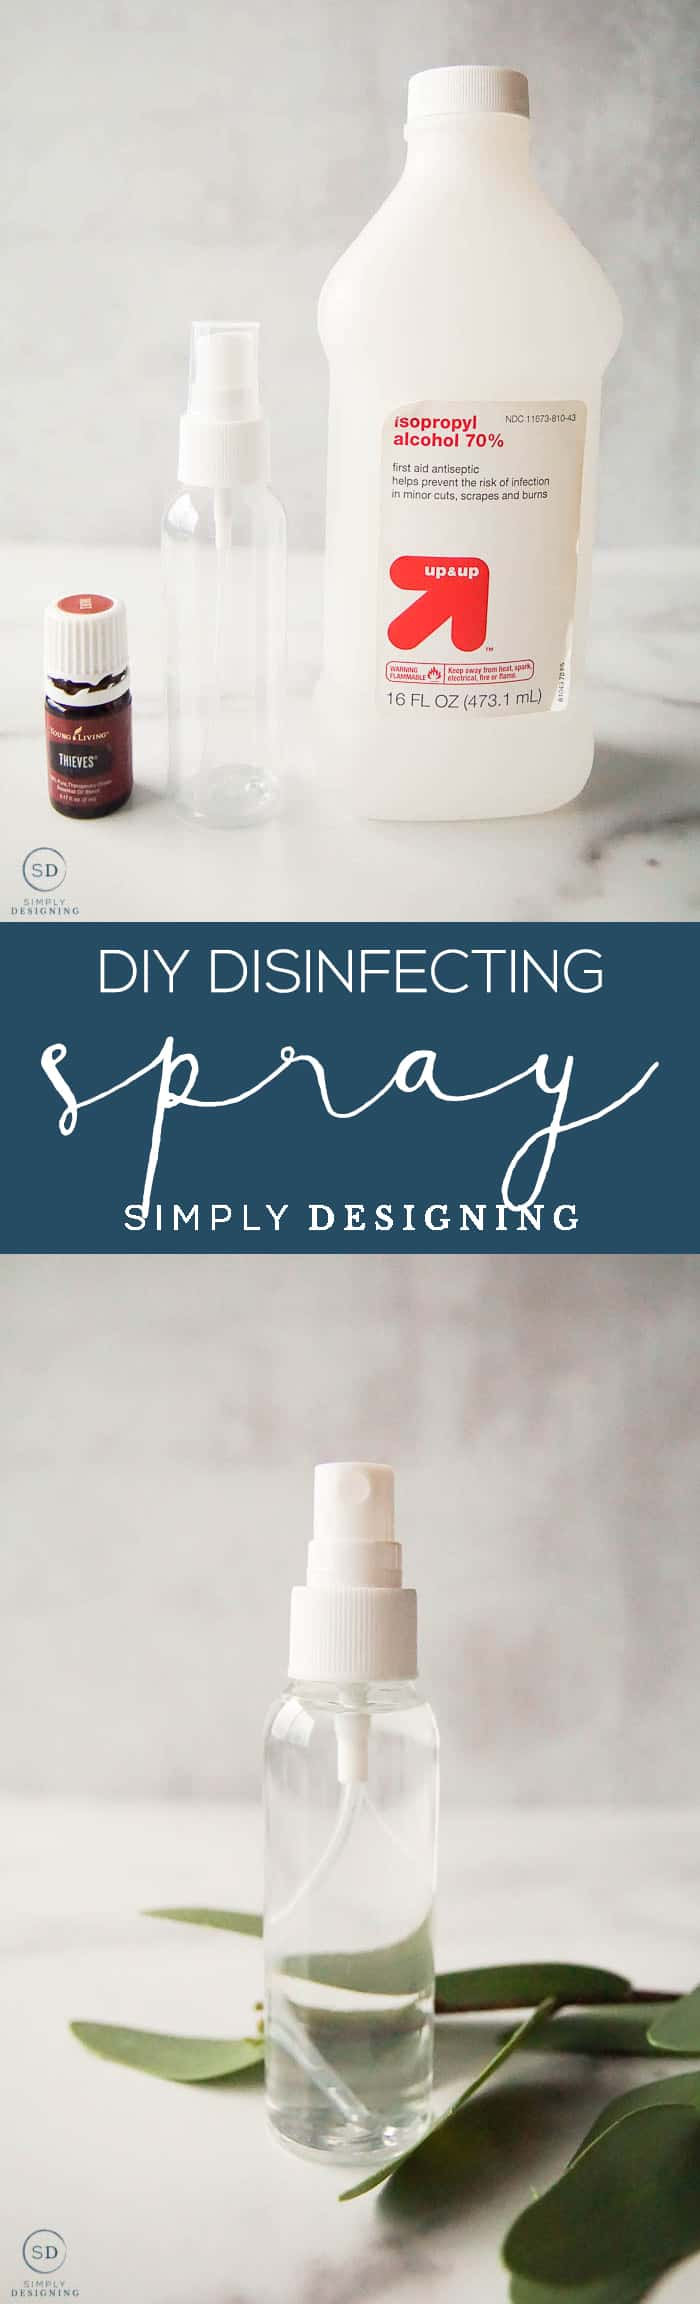 Learn how to make this DIY Disinfecting Spray so that you can easily disinfect doorknobs handles carts and so many other surfaces at home or on-the-go